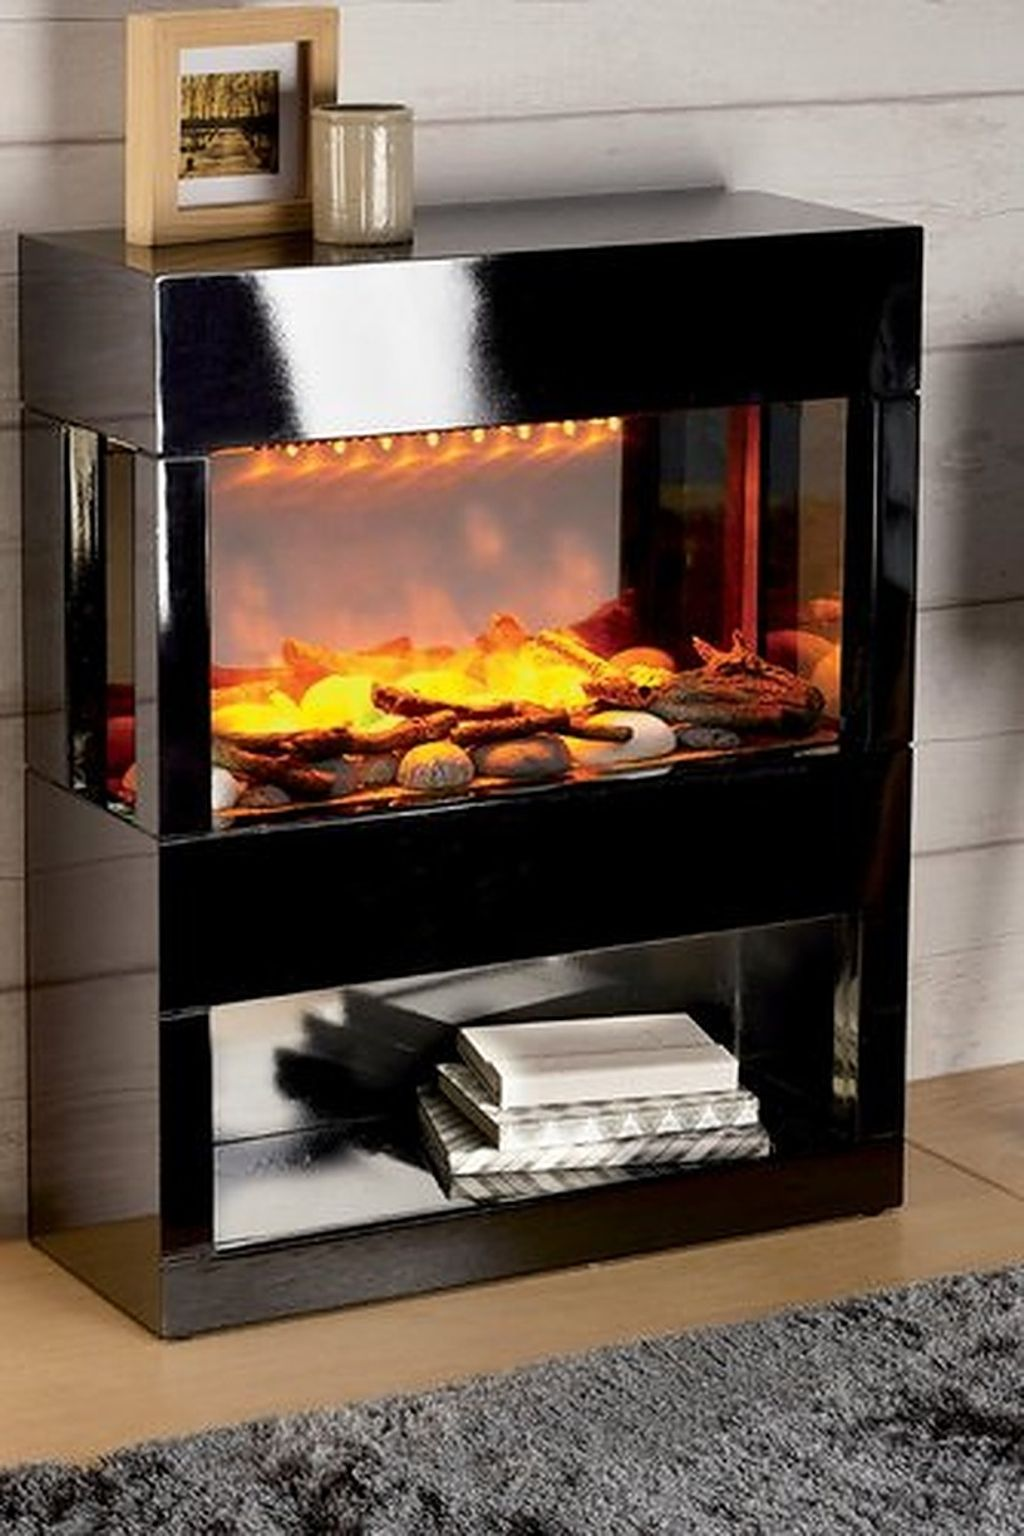 Electric Fireplace with Bookcase Unique Black Electric Fire Place Fireplace Bookcase